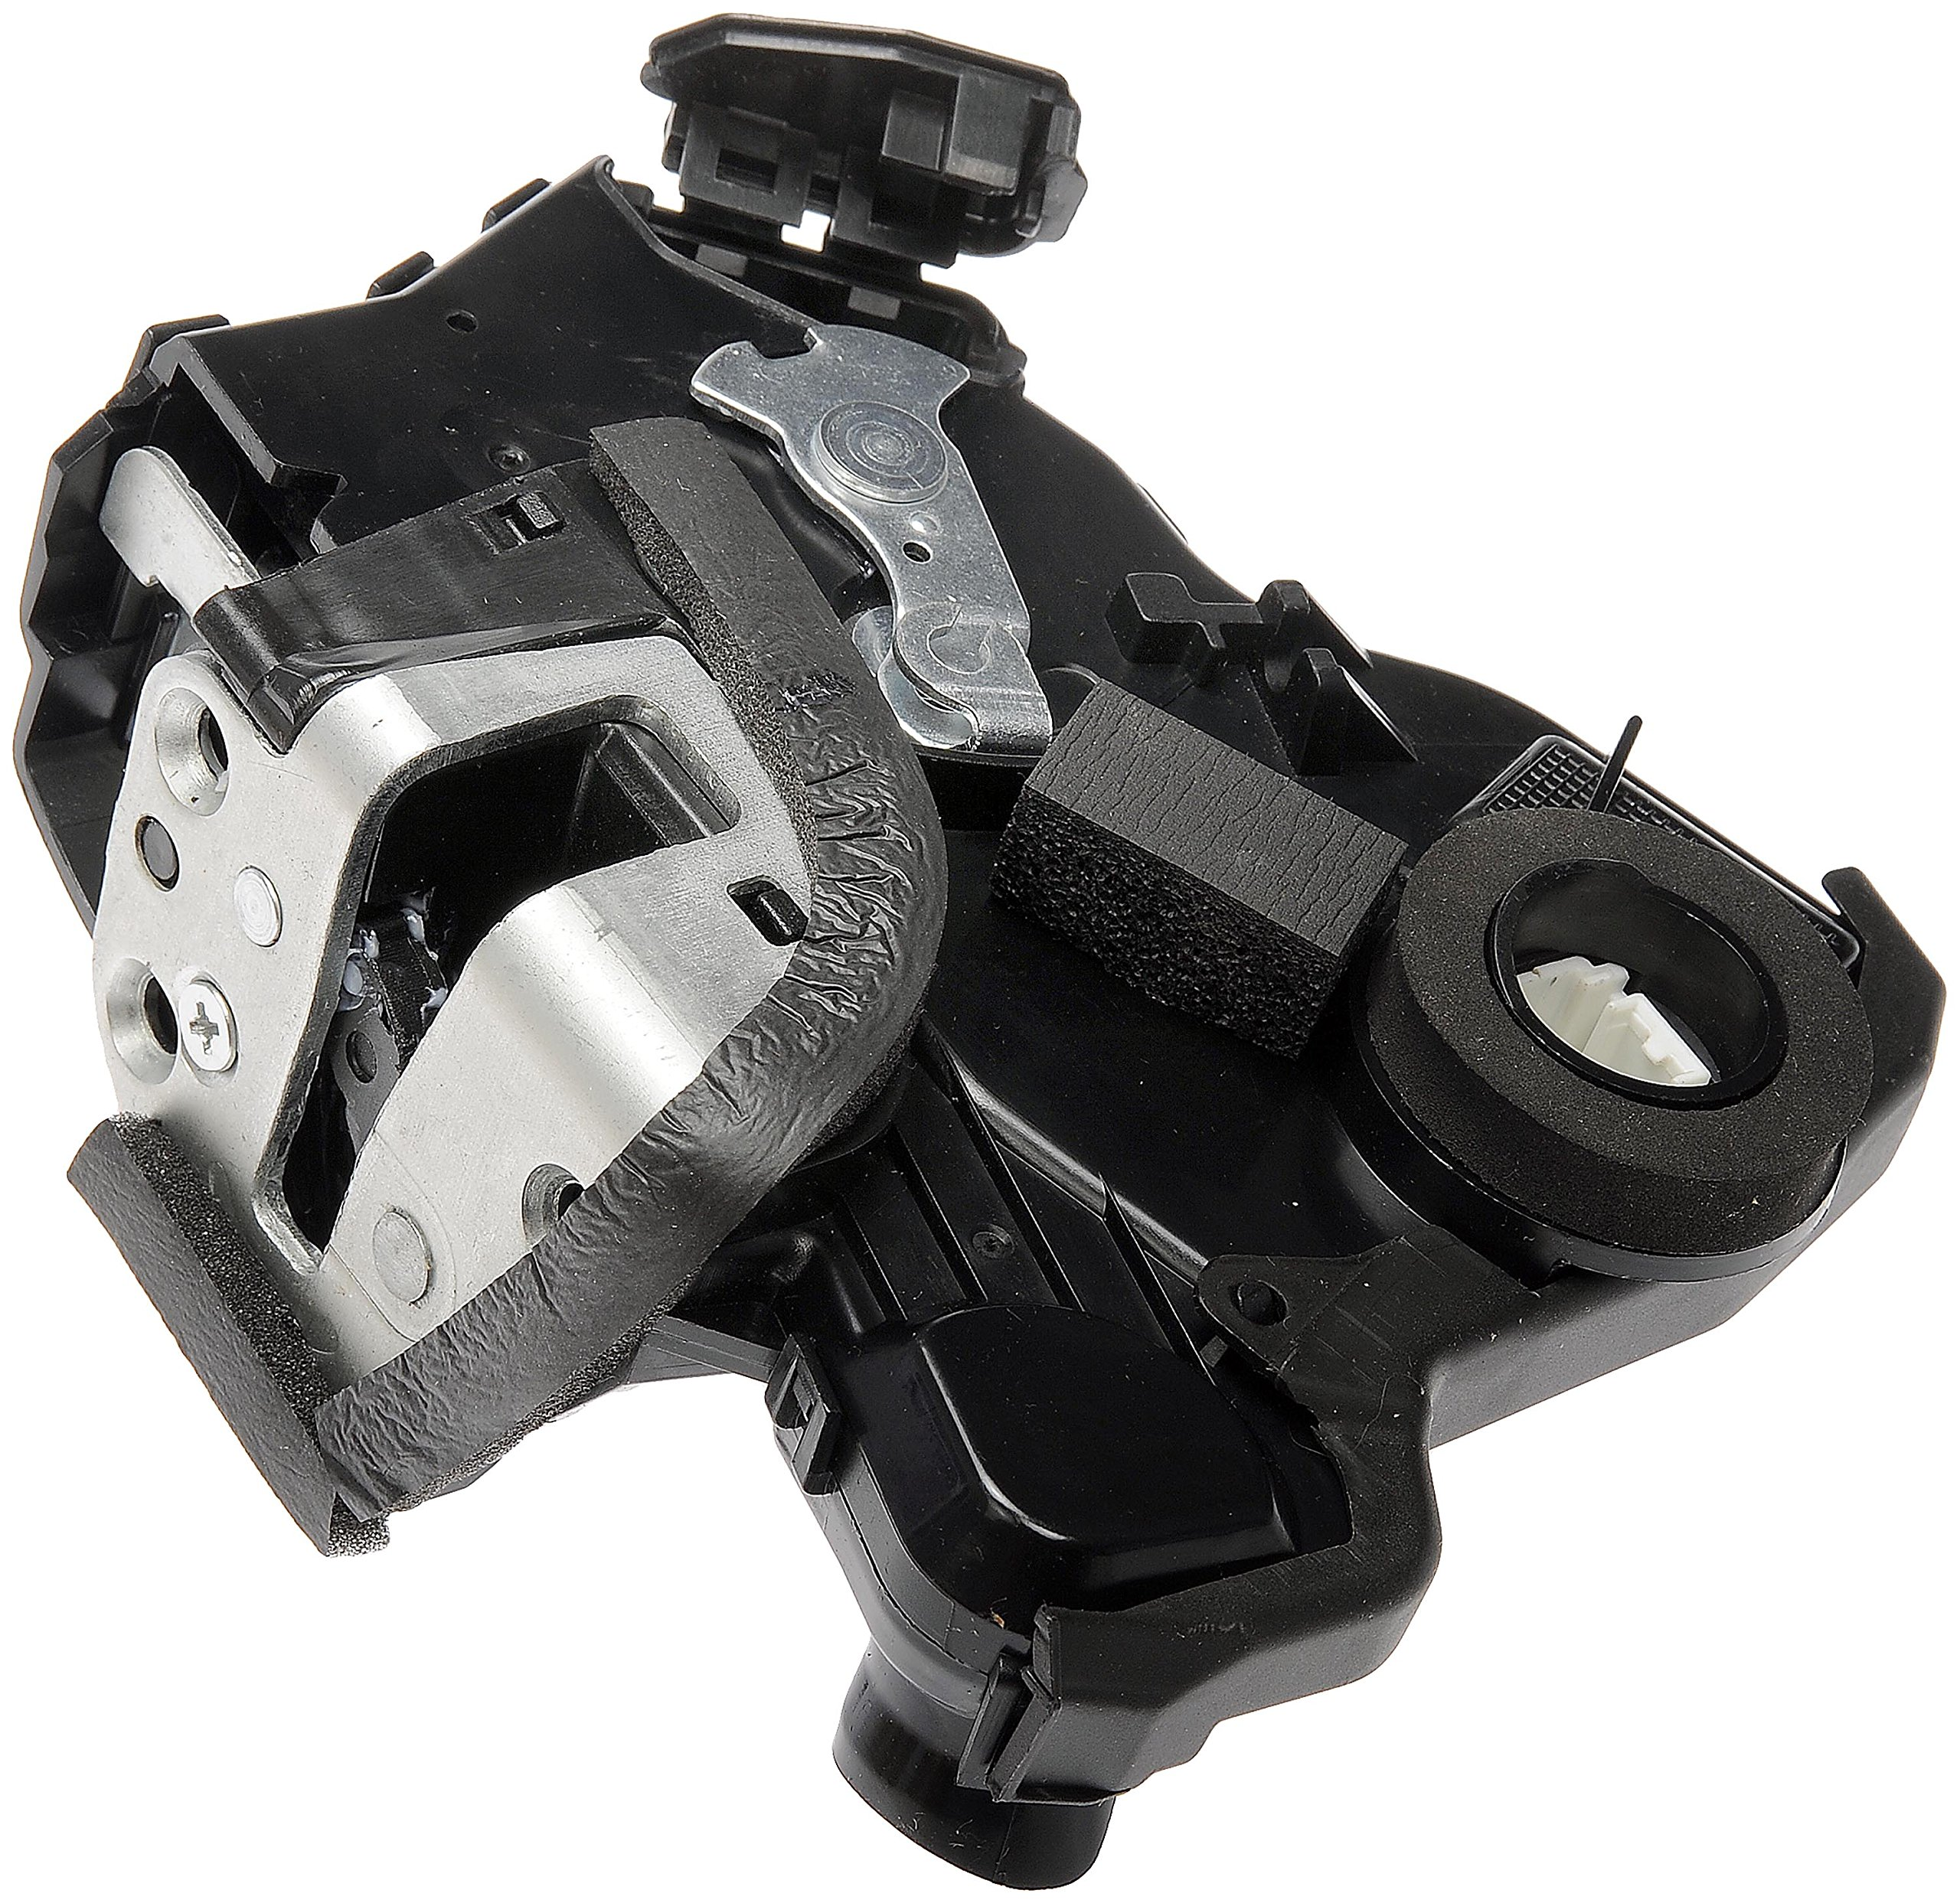 Dorman 931 402 Door Lock Actuator Buy Online In Bahamas Brand Dorman Products In Bahamas See Prices Reviews And Free Delivery Over Bsd80 Desertcart